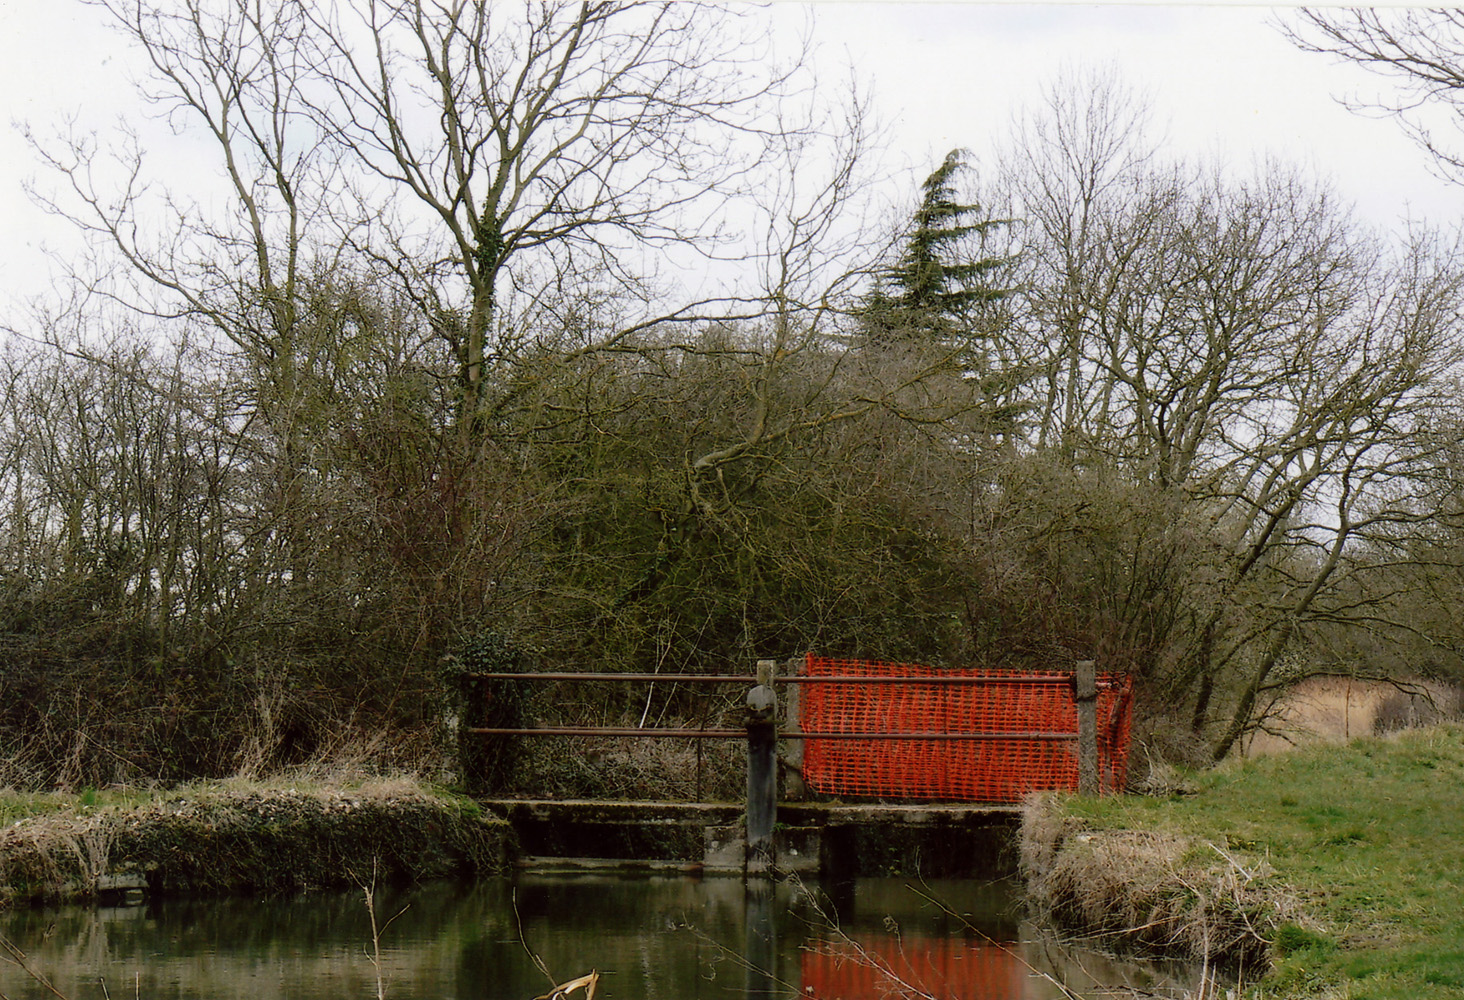 The lock gate giving access to the old lock house